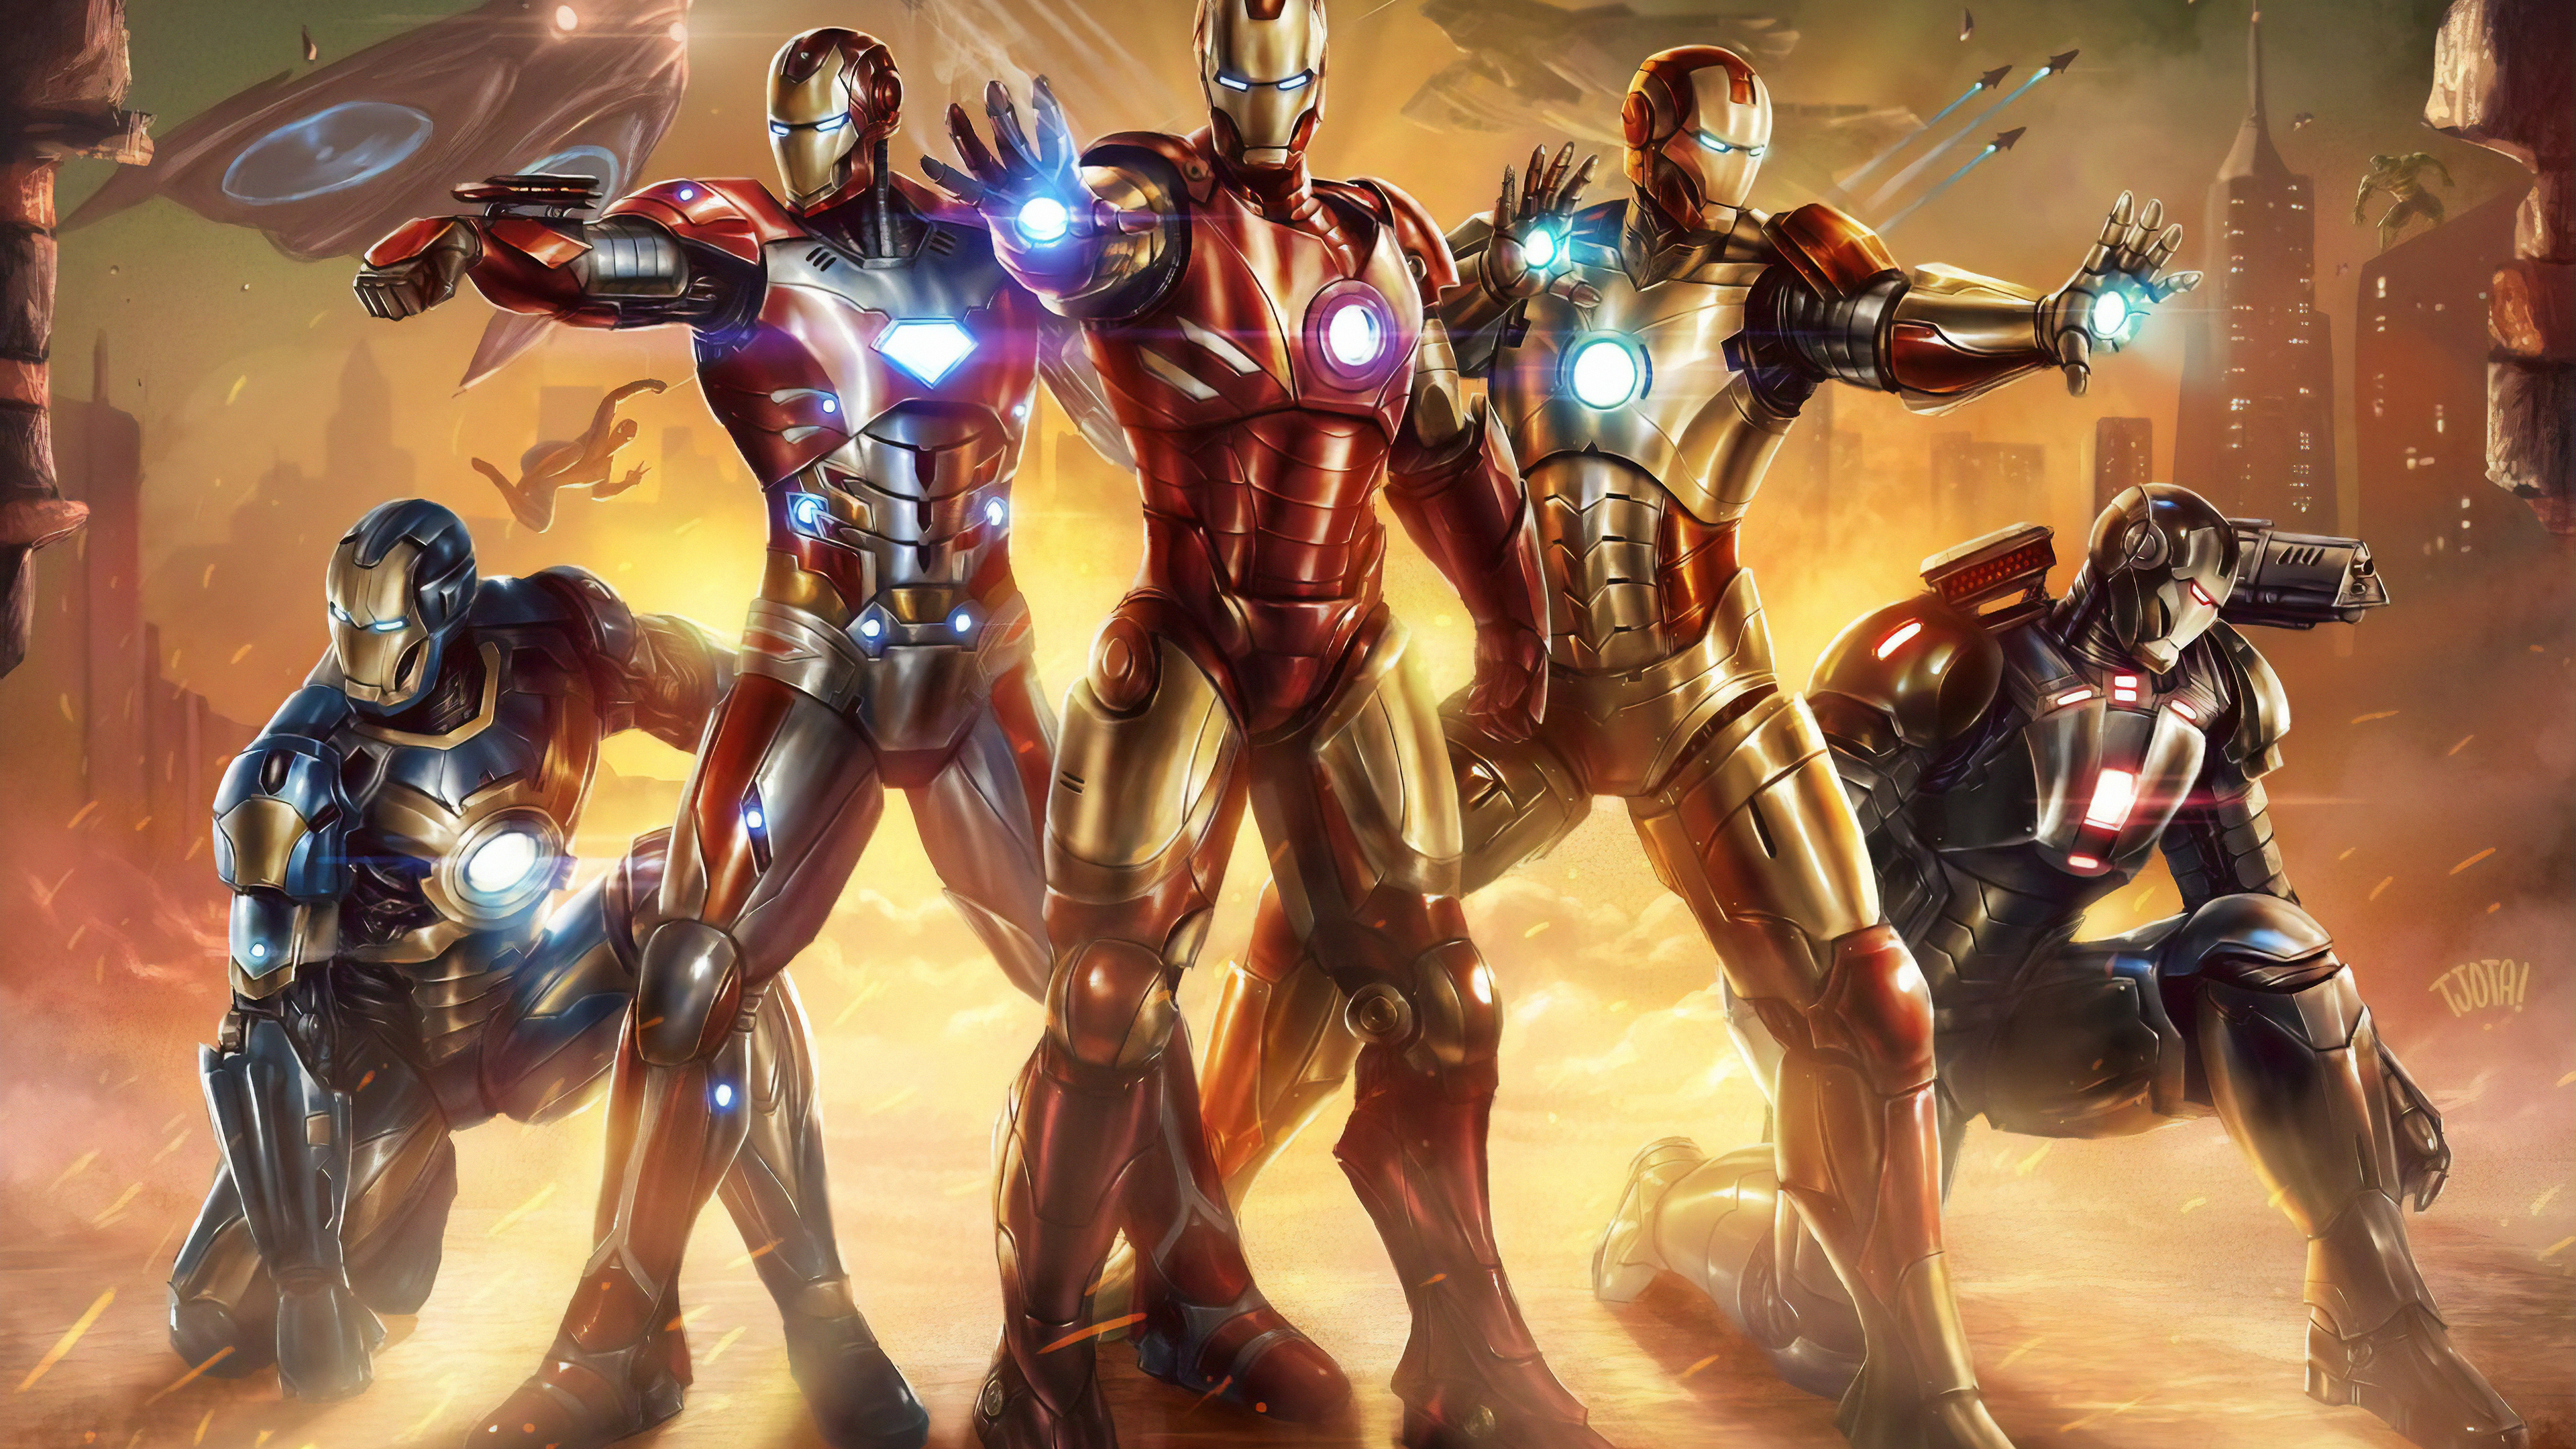 all iron man suit 1565053437 - All Iron Man Suit - superheroes wallpapers, iron man wallpapers, hd-wallpapers, deviantart wallpapers, artwork wallpapers, artist wallpapers, 4k-wallpapers